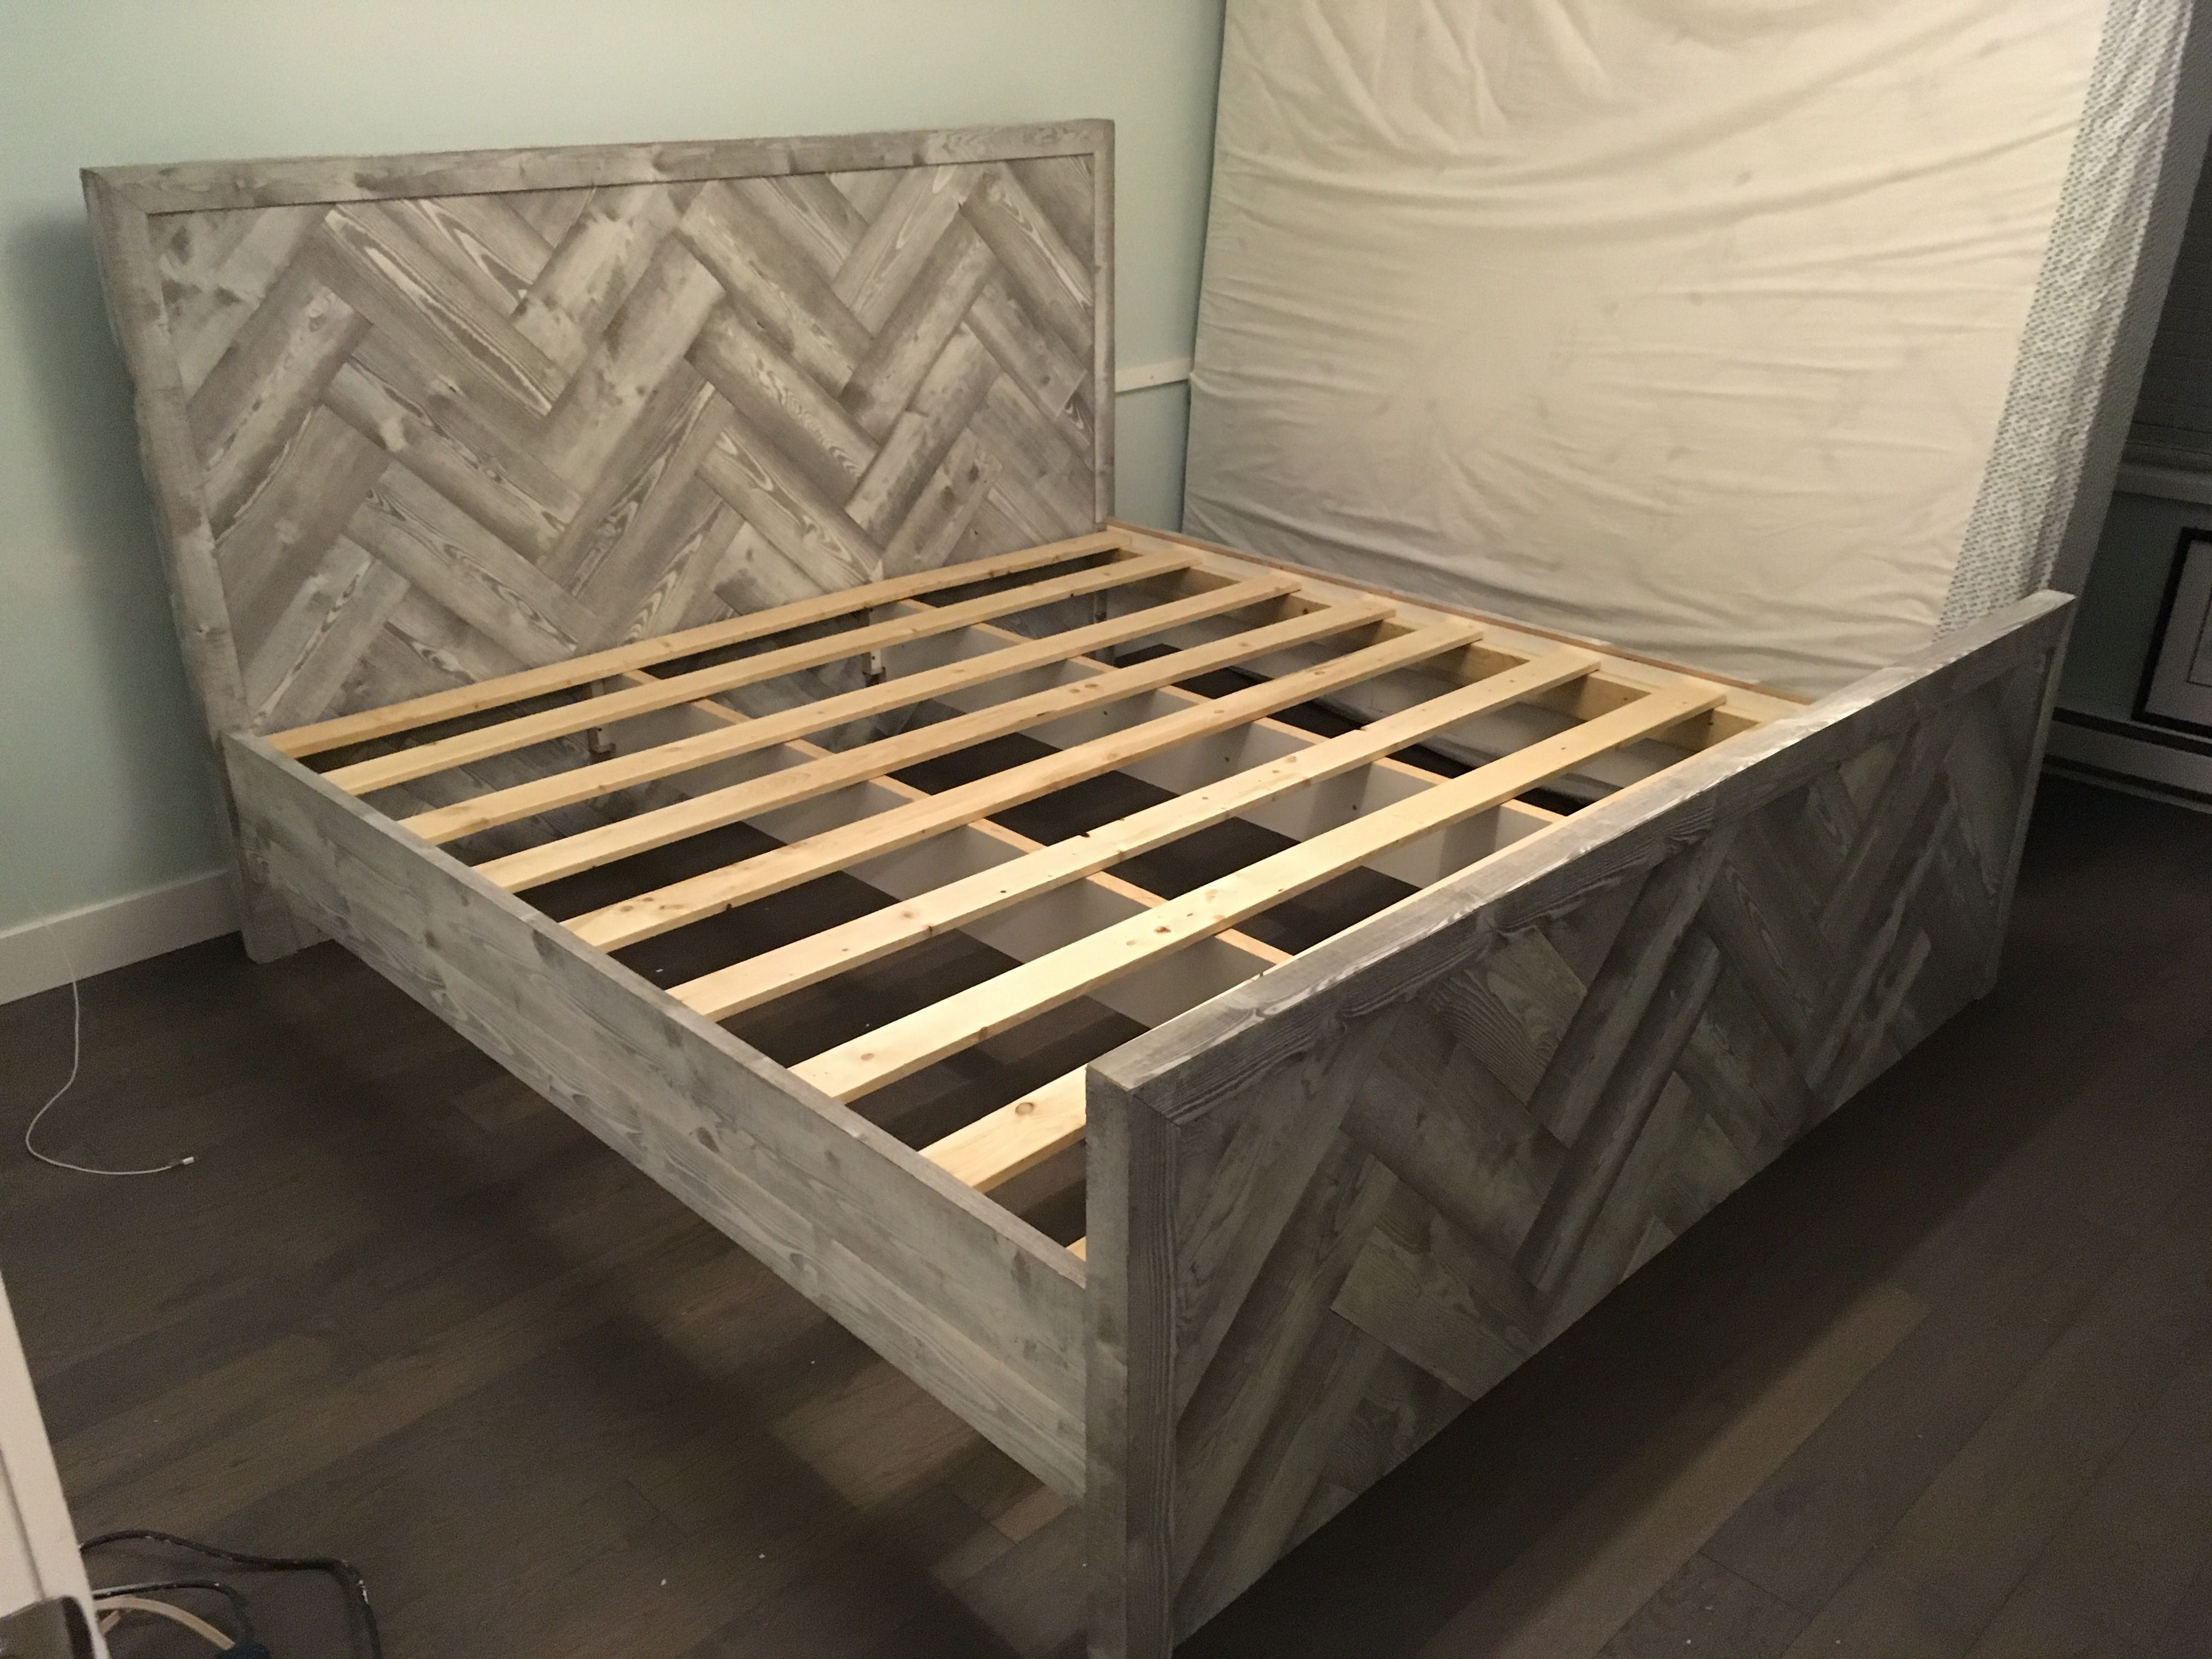 Best 25+ King size frame ideas on Pinterest | King size bedroom suites, King  size bed headboard and Rustic bedroom furniture